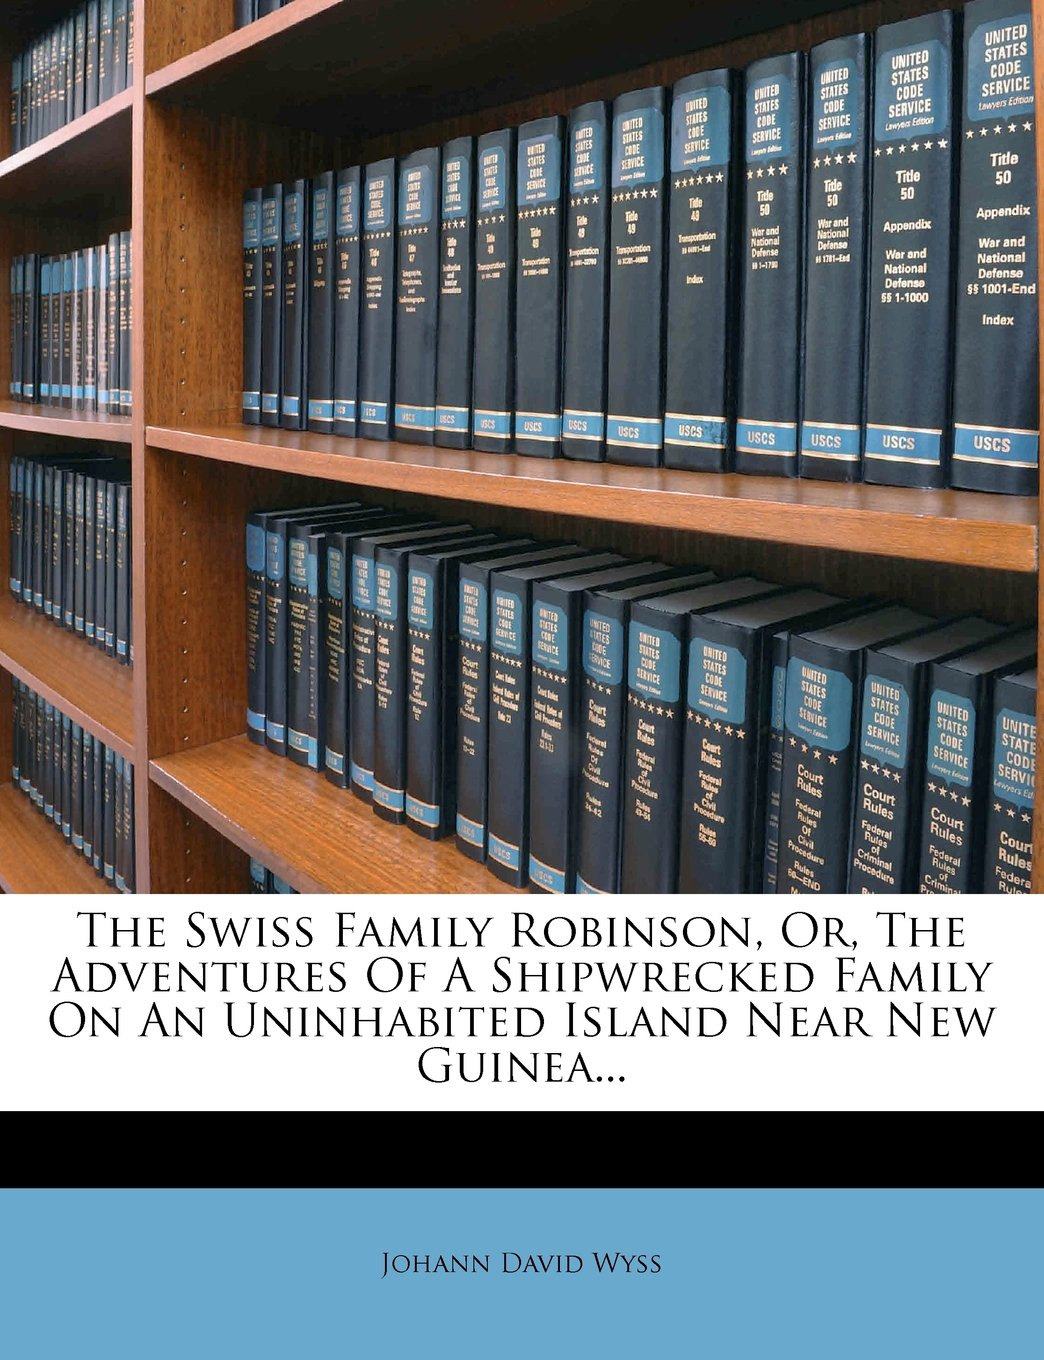 The Swiss Family Robinson, Or, The Adventures Of A Shipwrecked Family On An Uninhabited Island Near New Guinea... PDF